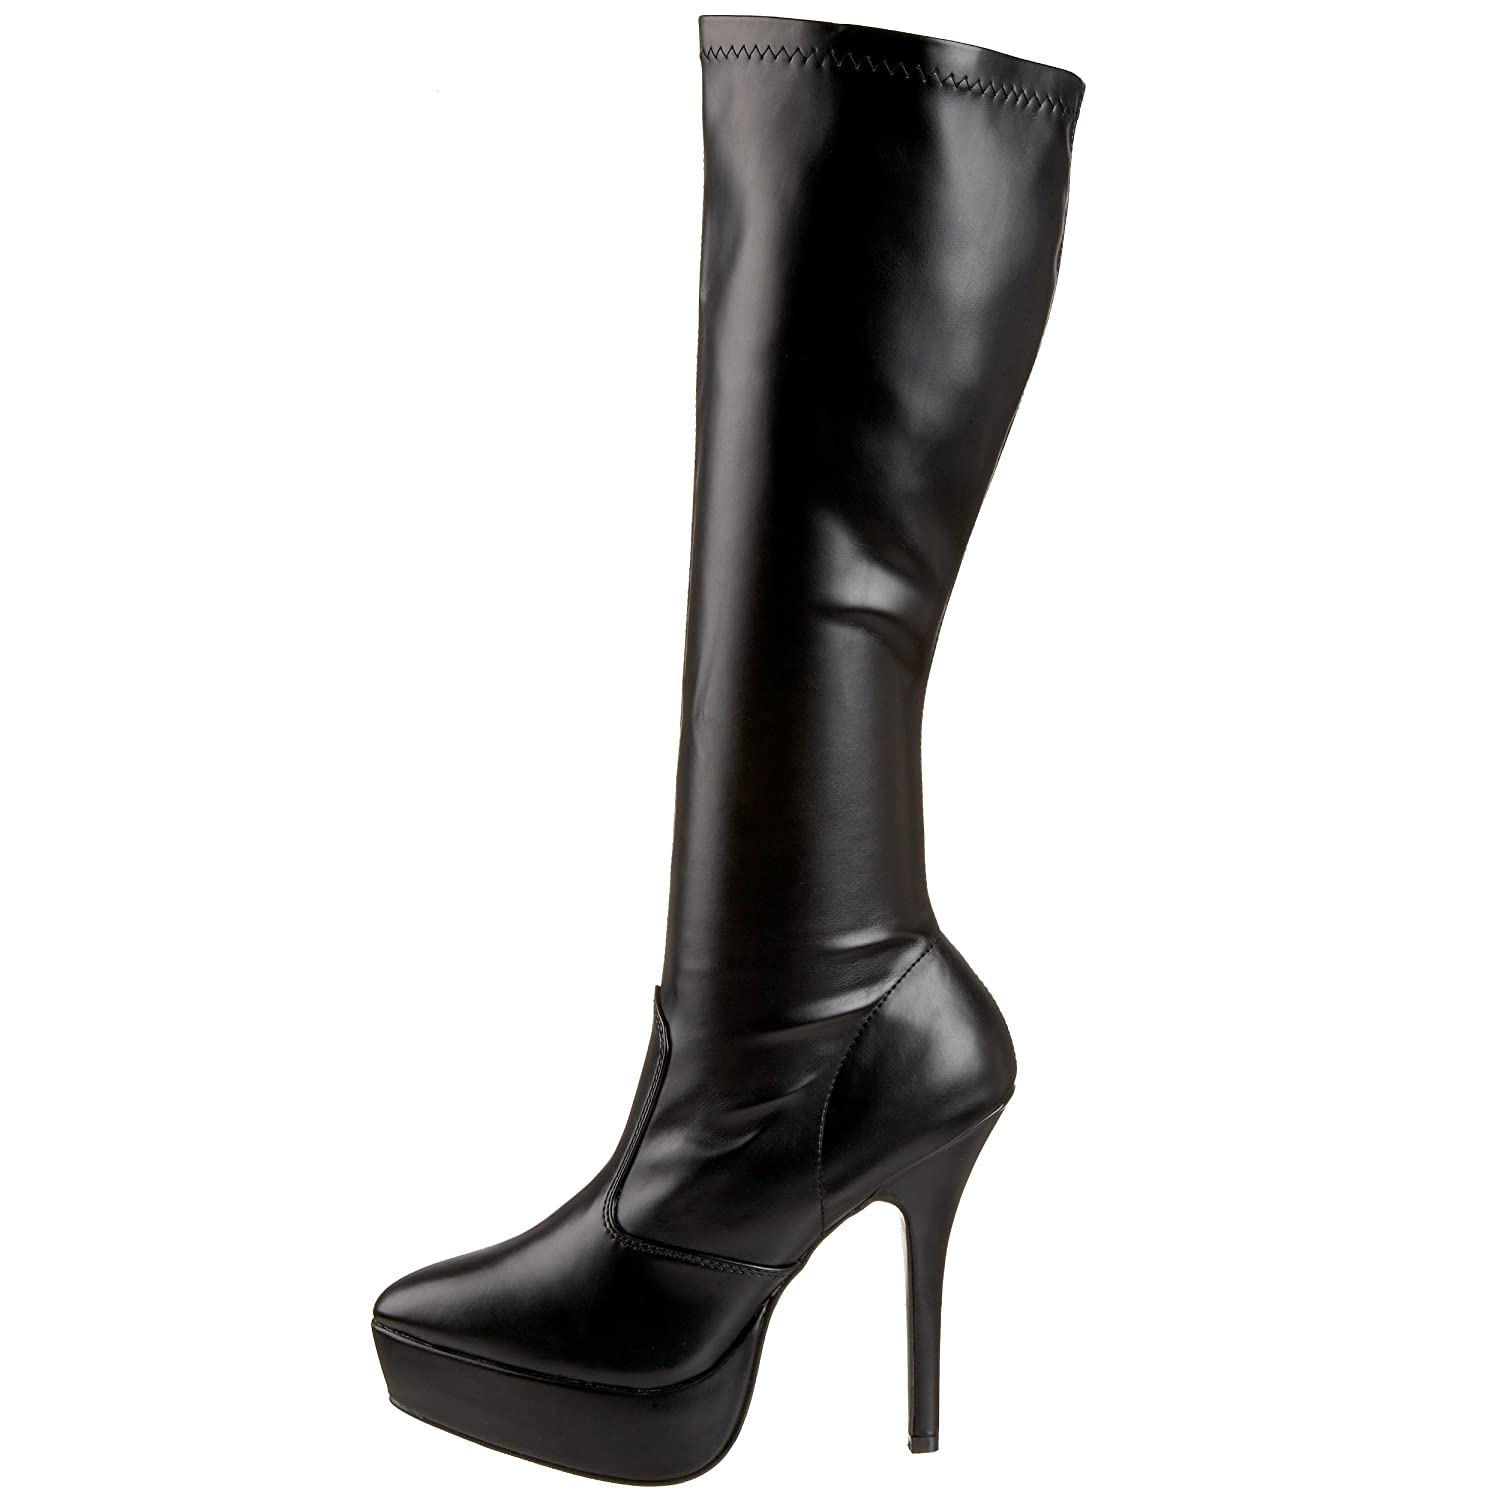 Pleaser Women's Indulge-2000 Platform US|Black Boot B000XUPHOQ 9 B(M) US|Black Platform Stretch Pu e63c9a